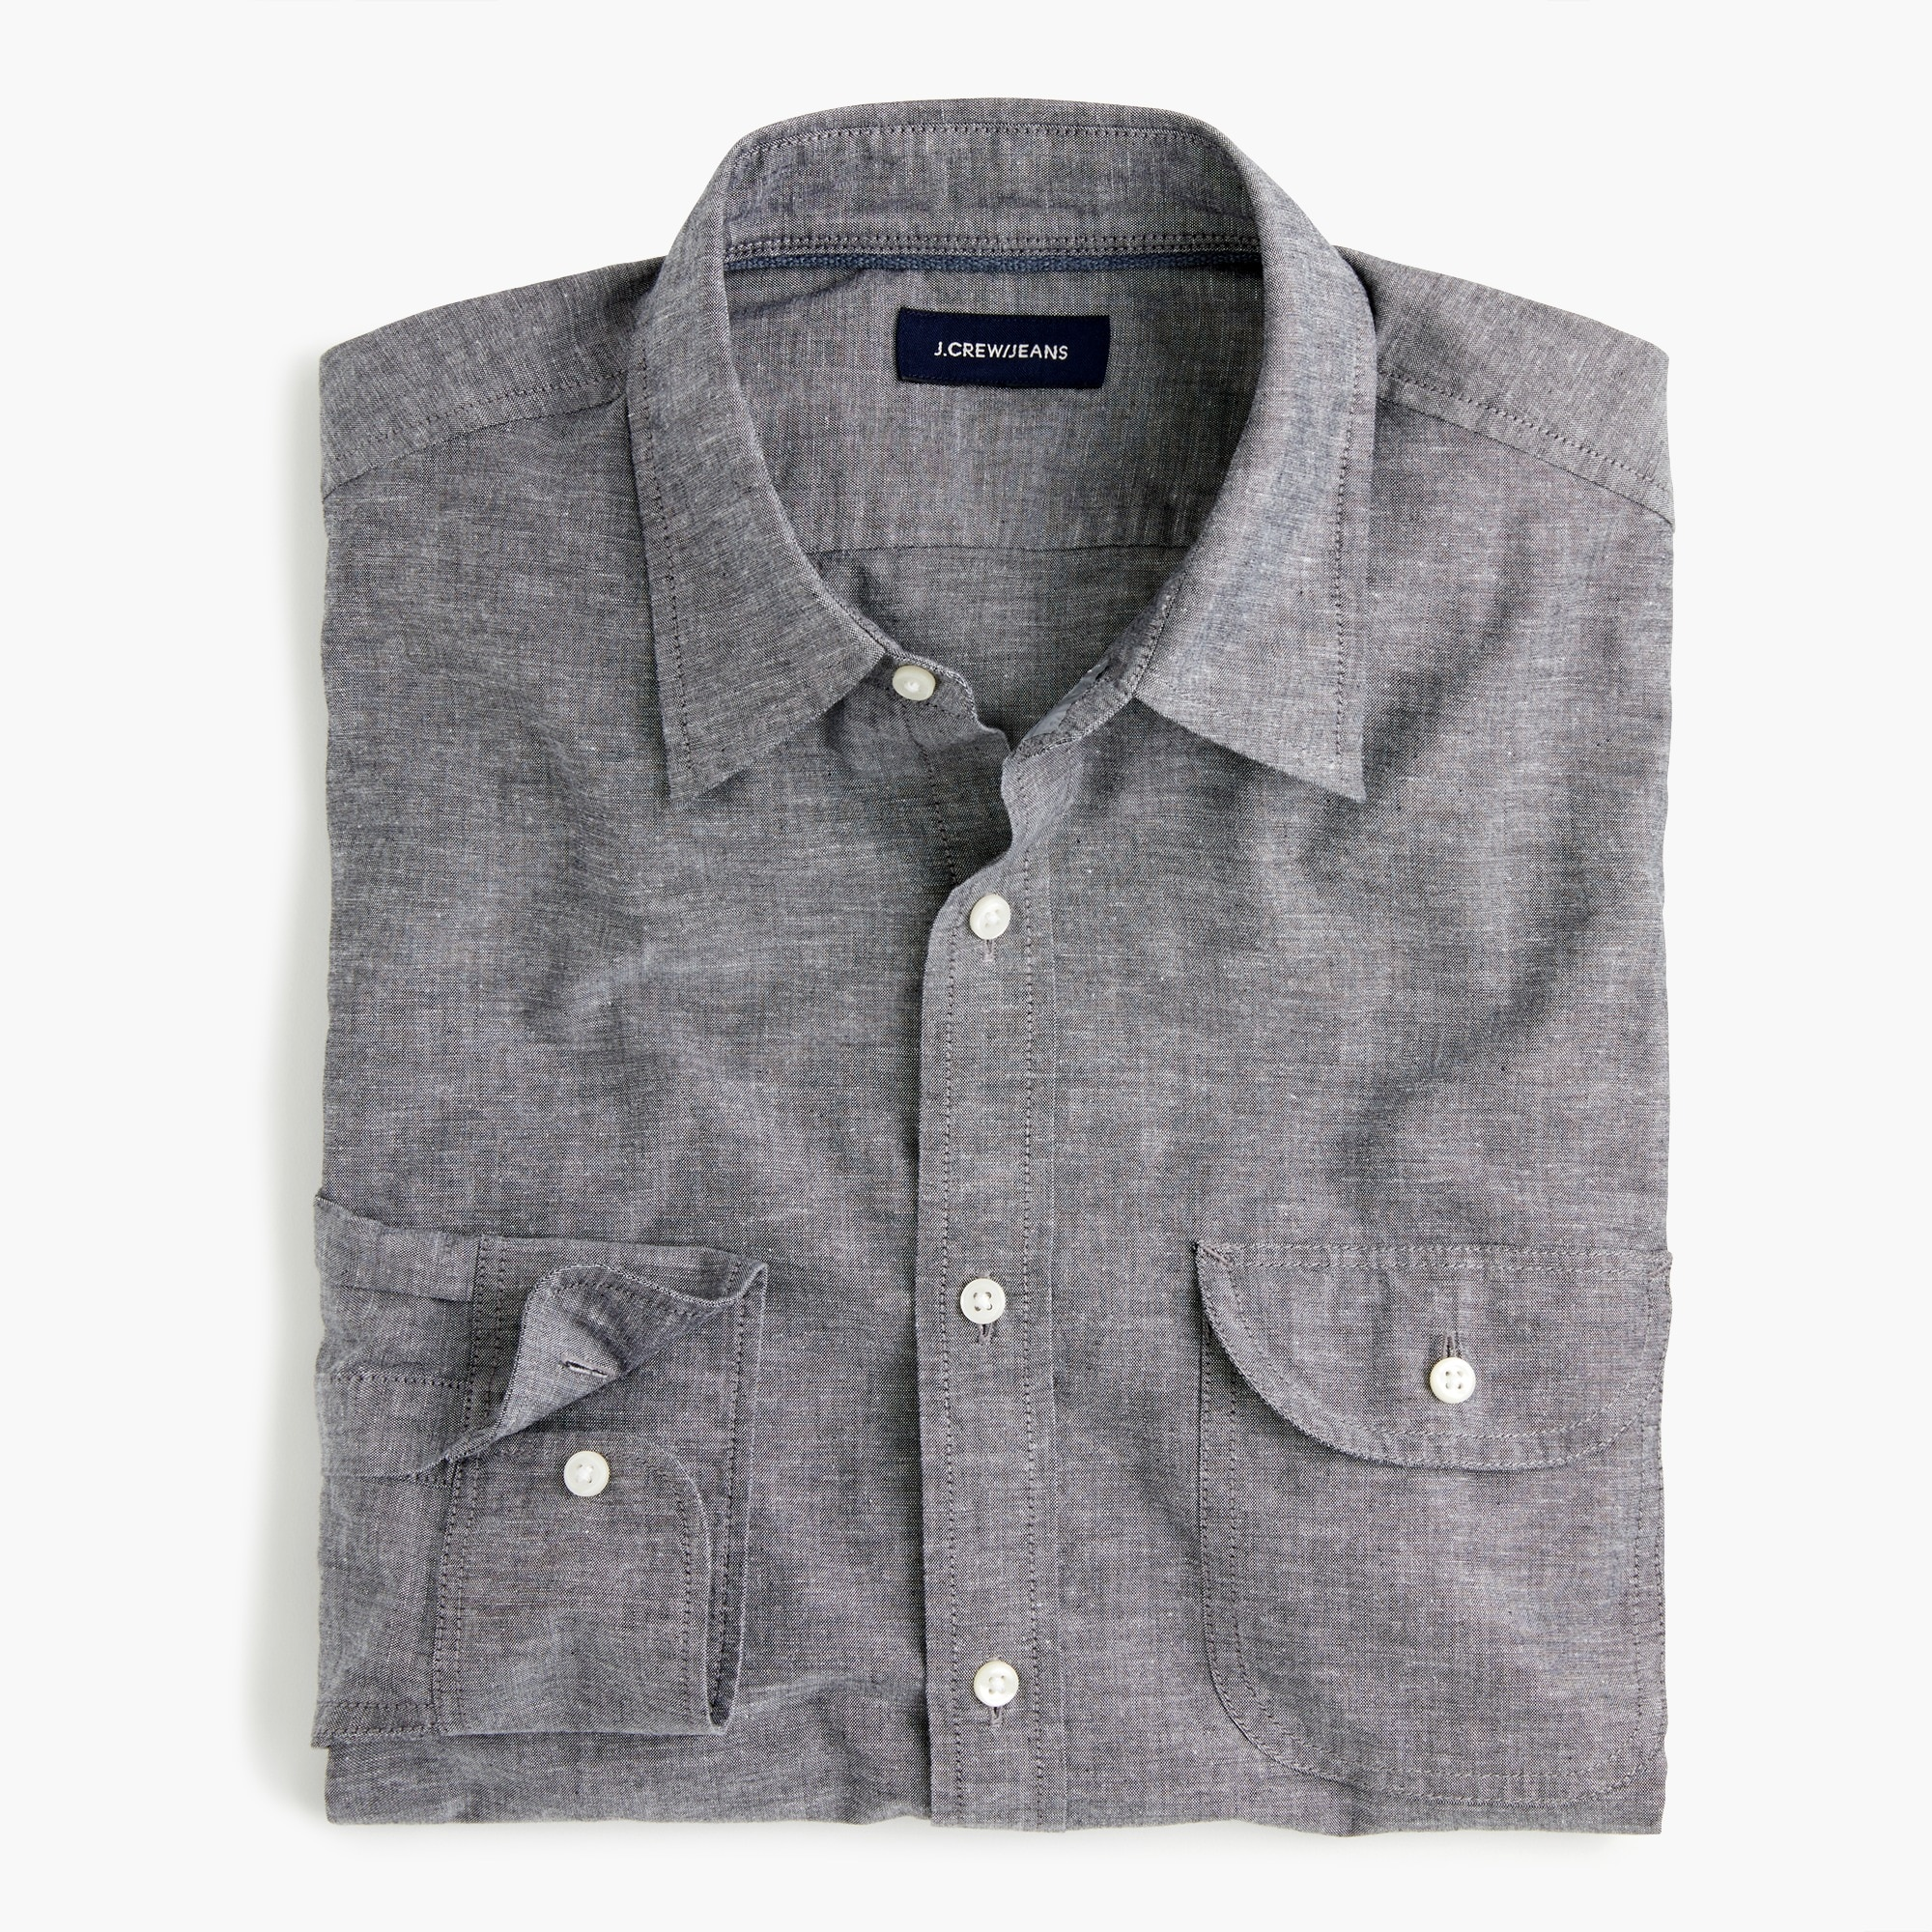 Slim slub poplin cotton shirt